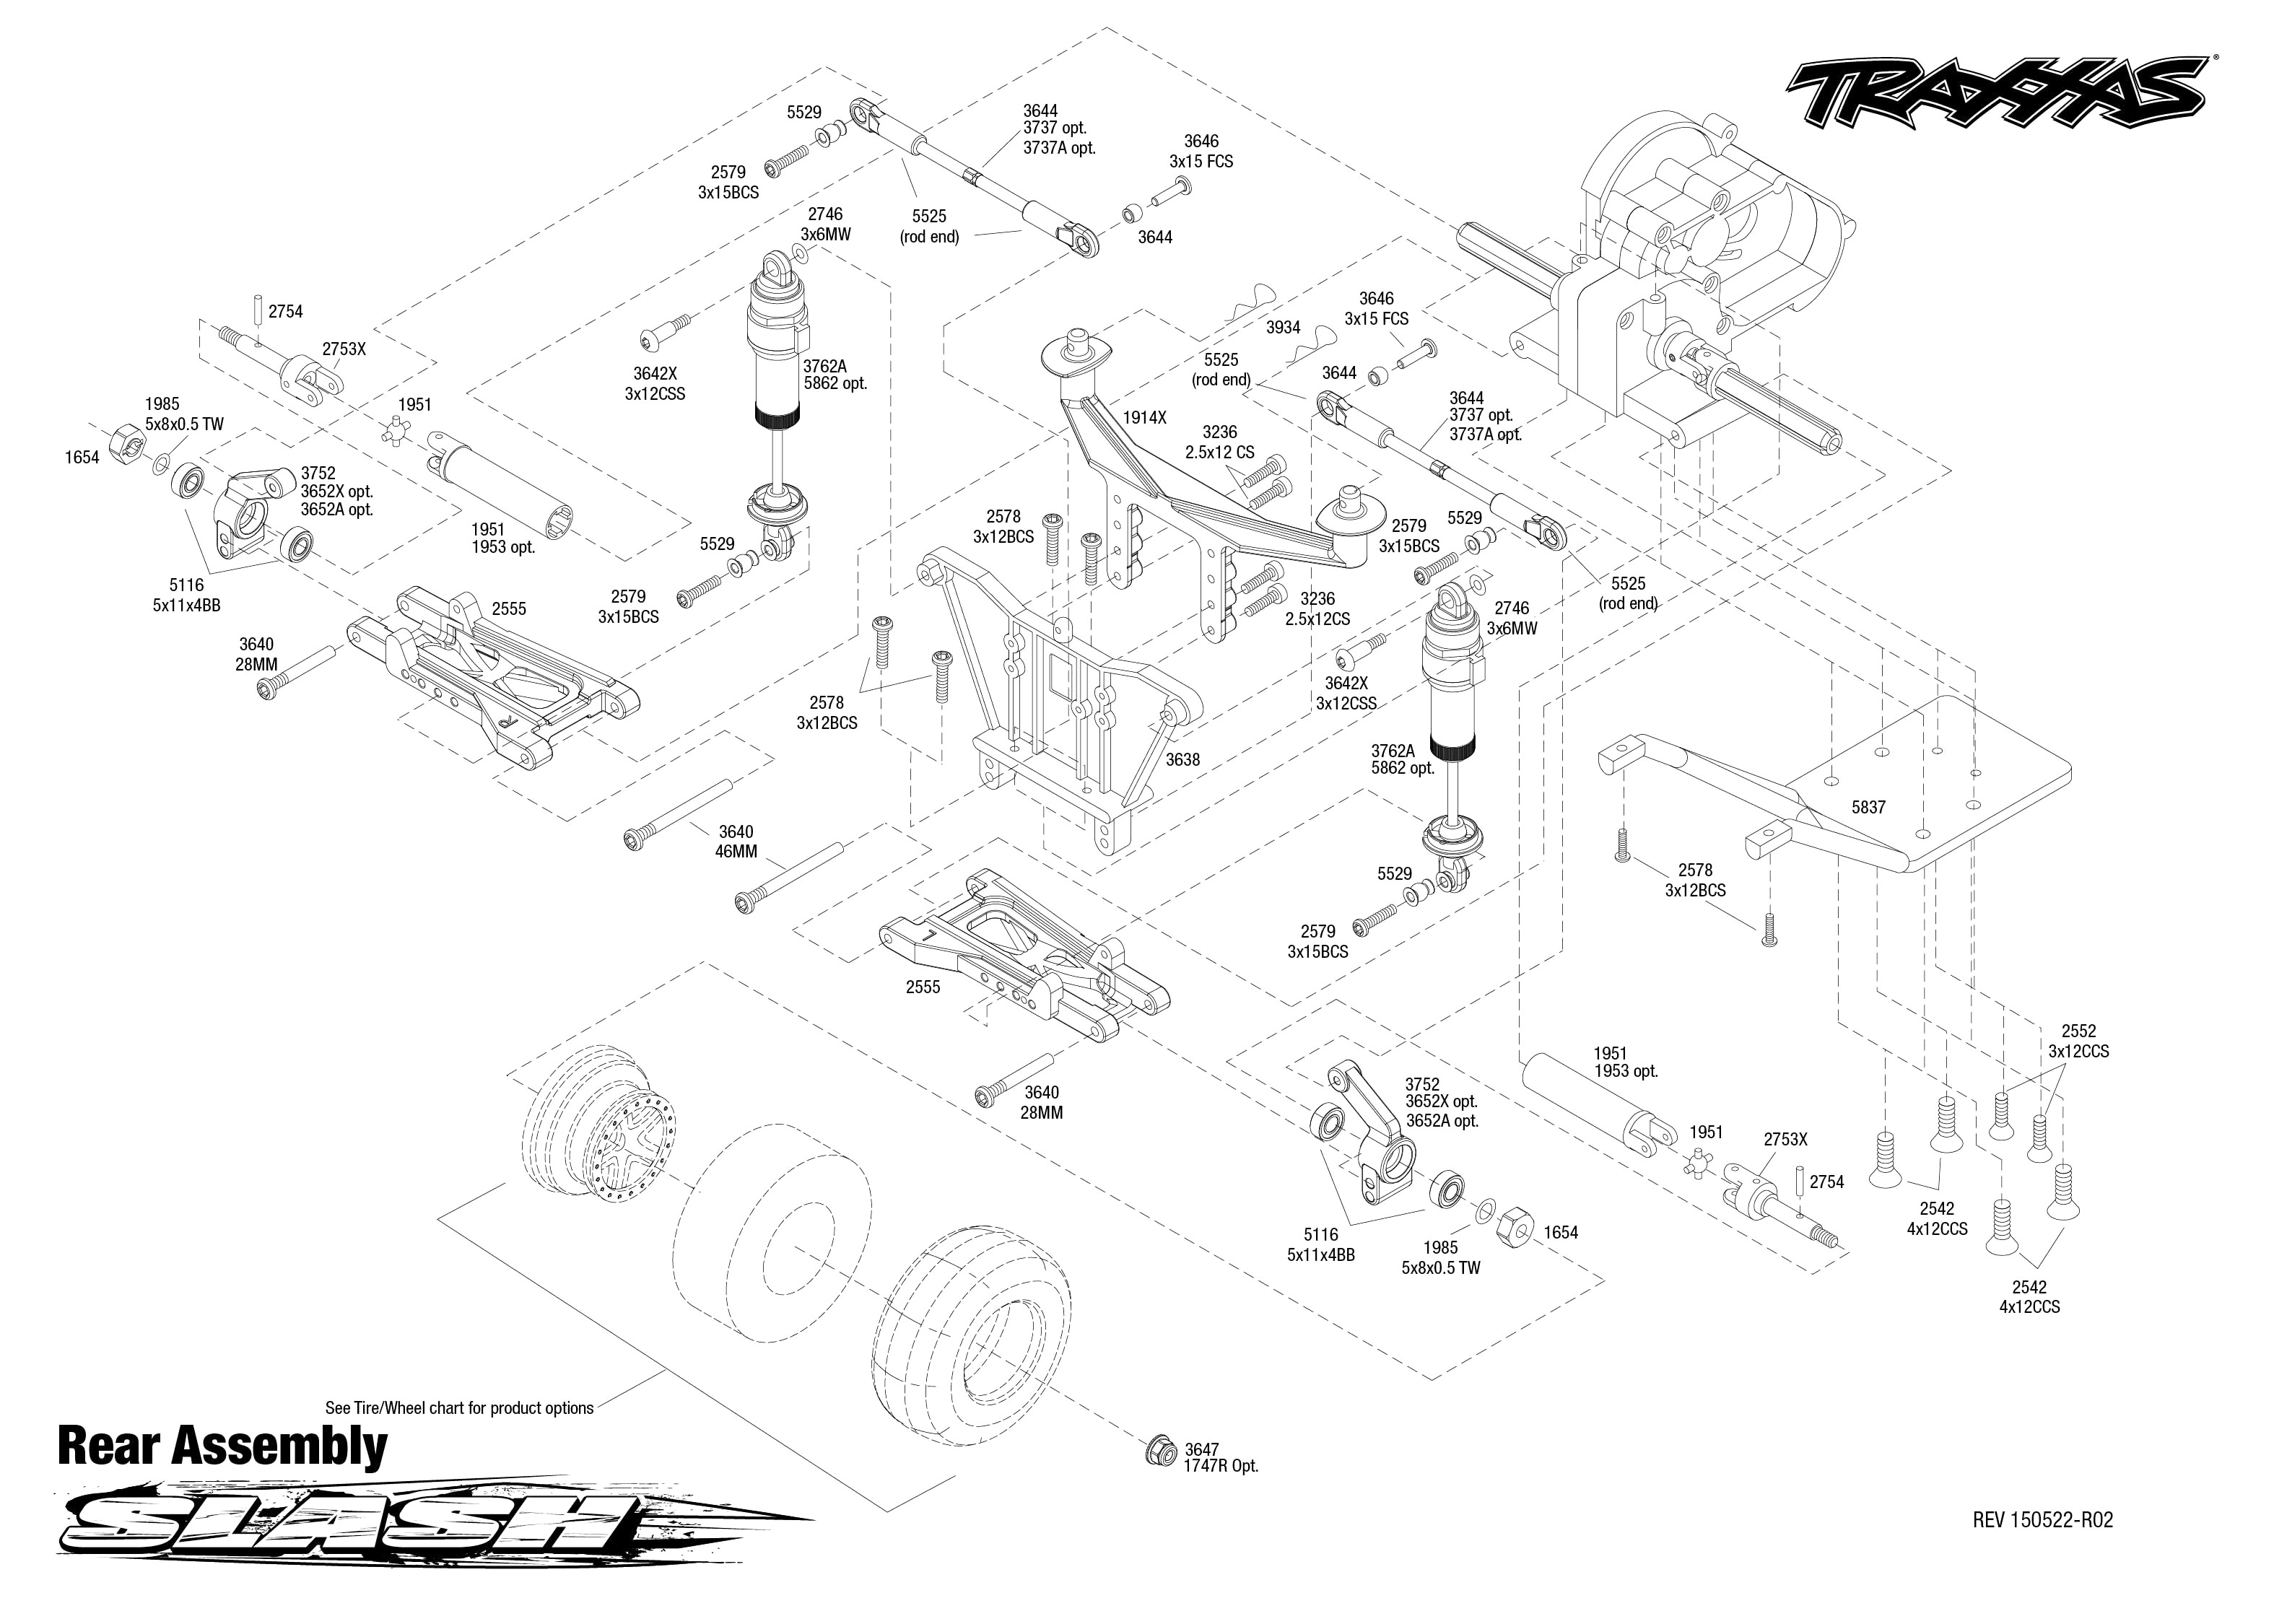 Diagram Traxxas Slash 2wd Diagram Full Version Hd Quality 2wd Diagram Diagramslamaw Newton114 It